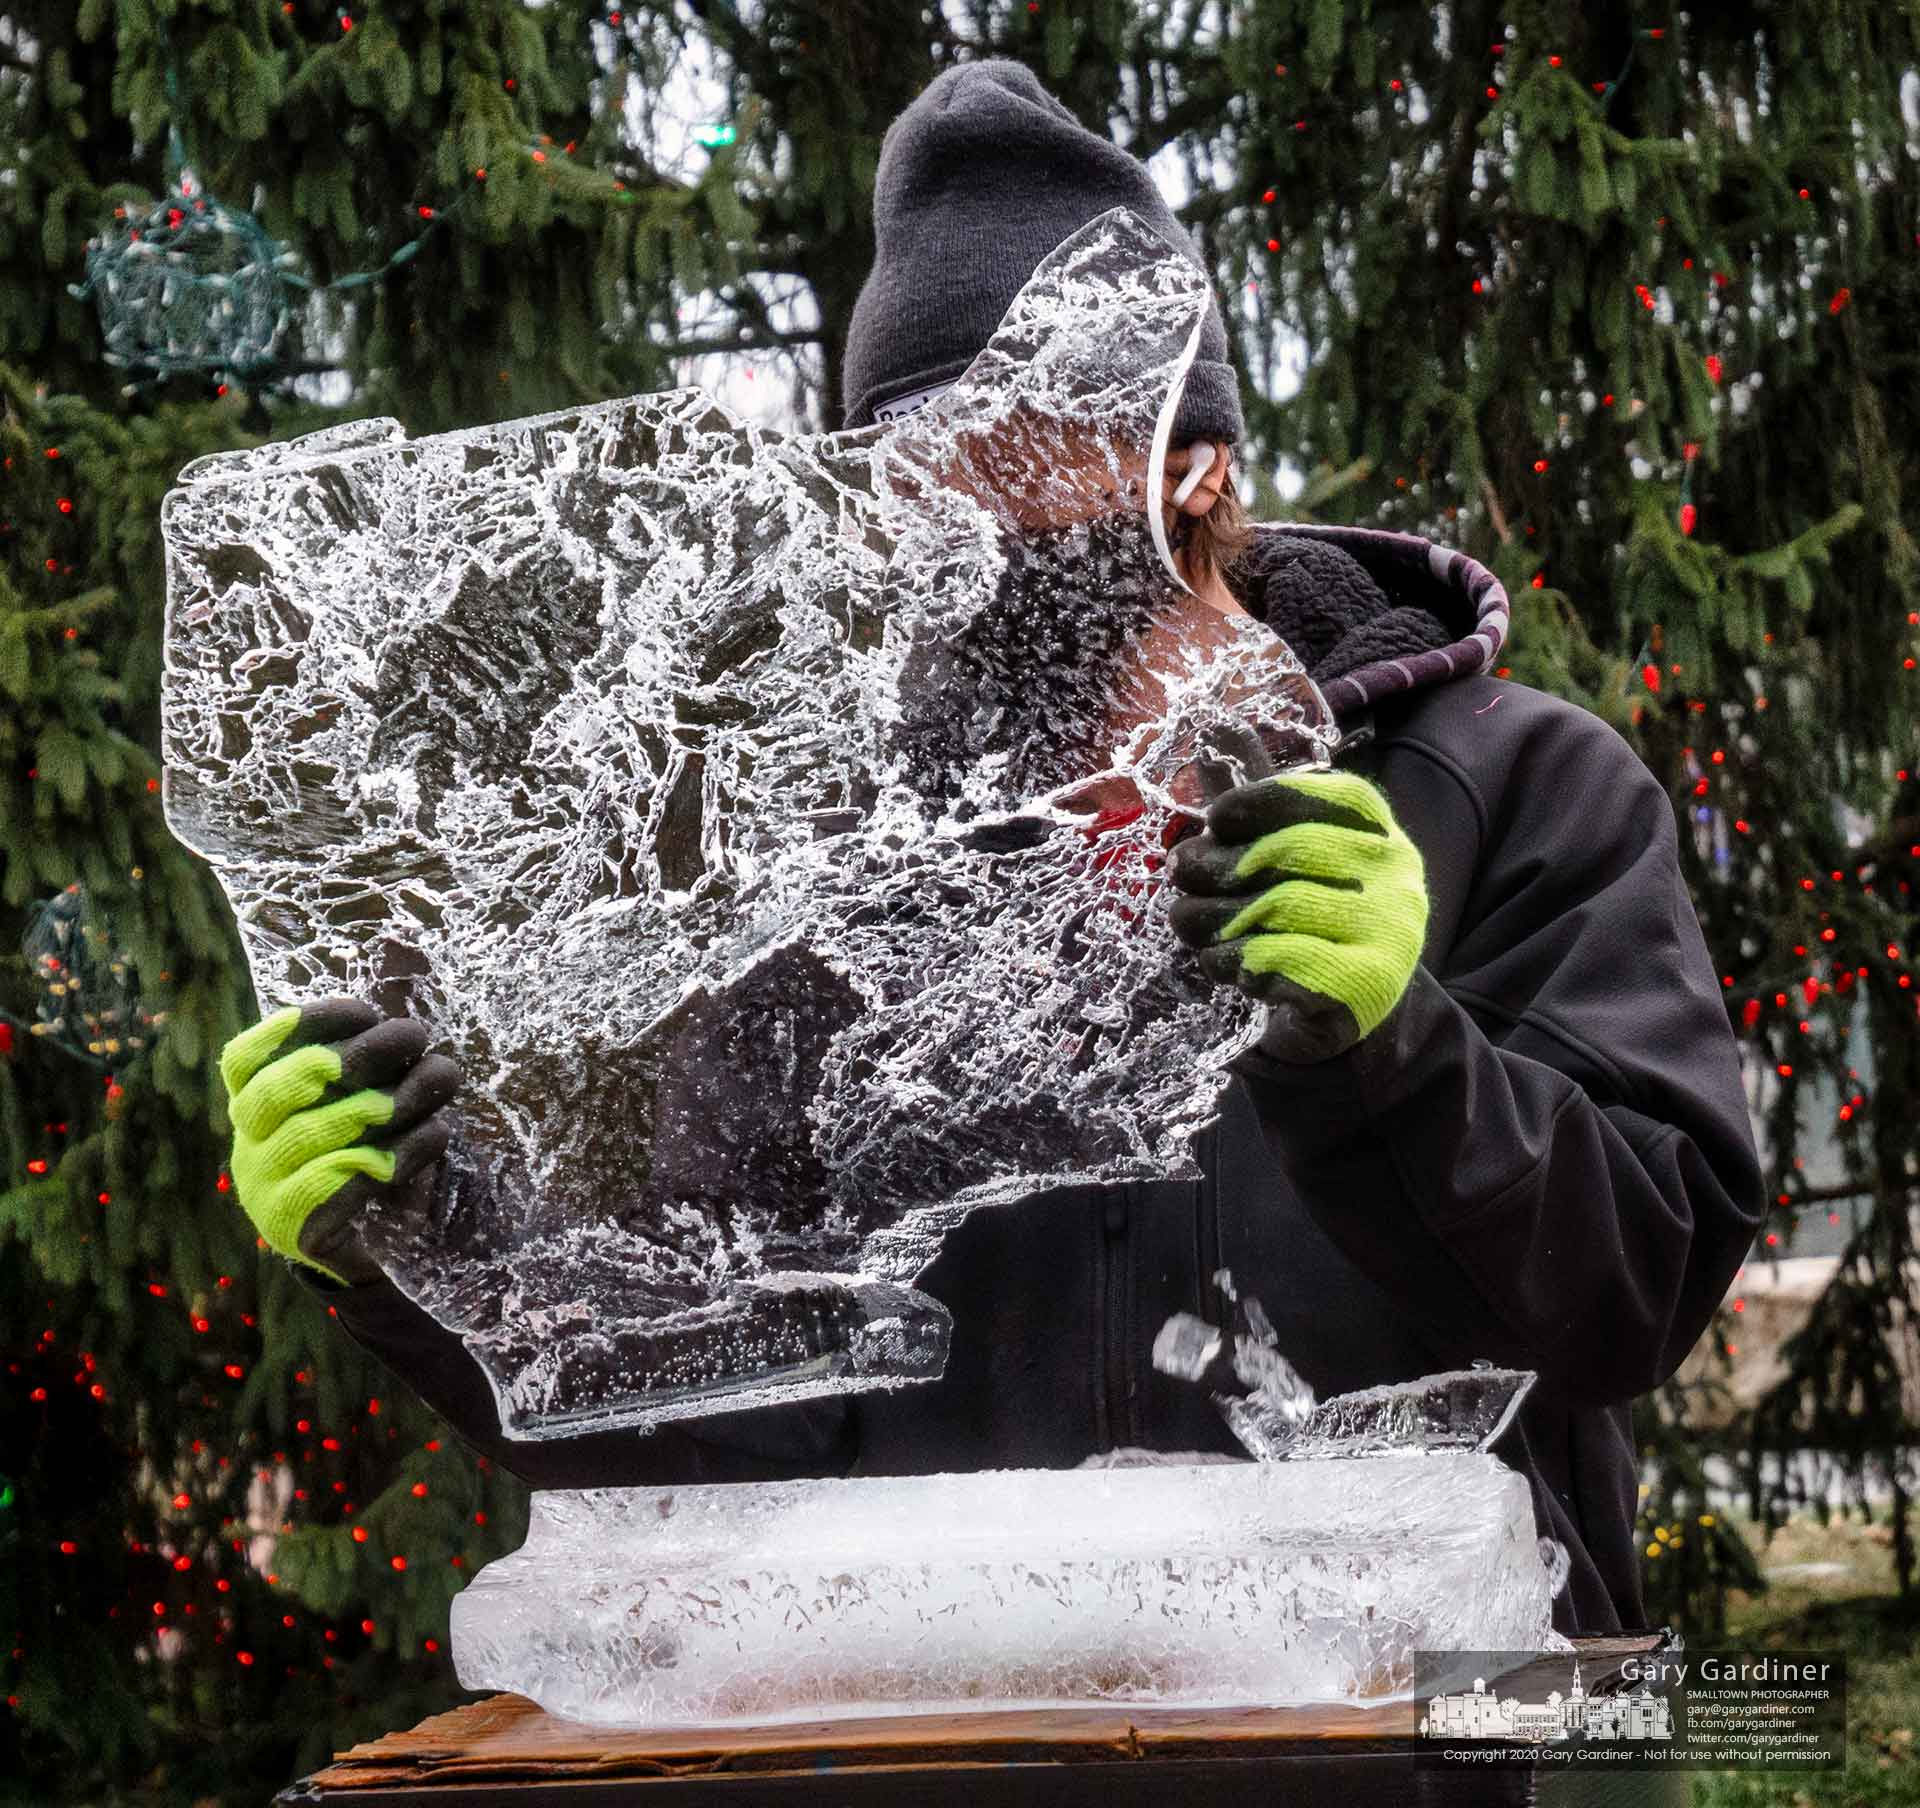 One of the ice sculptures in front of Westerville city hall is removed from its stand after, with its companion sculptures, spending the weekend adorning the Uptown area for the final weekend of shopping before Christmas. My Final Photo for Dec. 22, 2020.